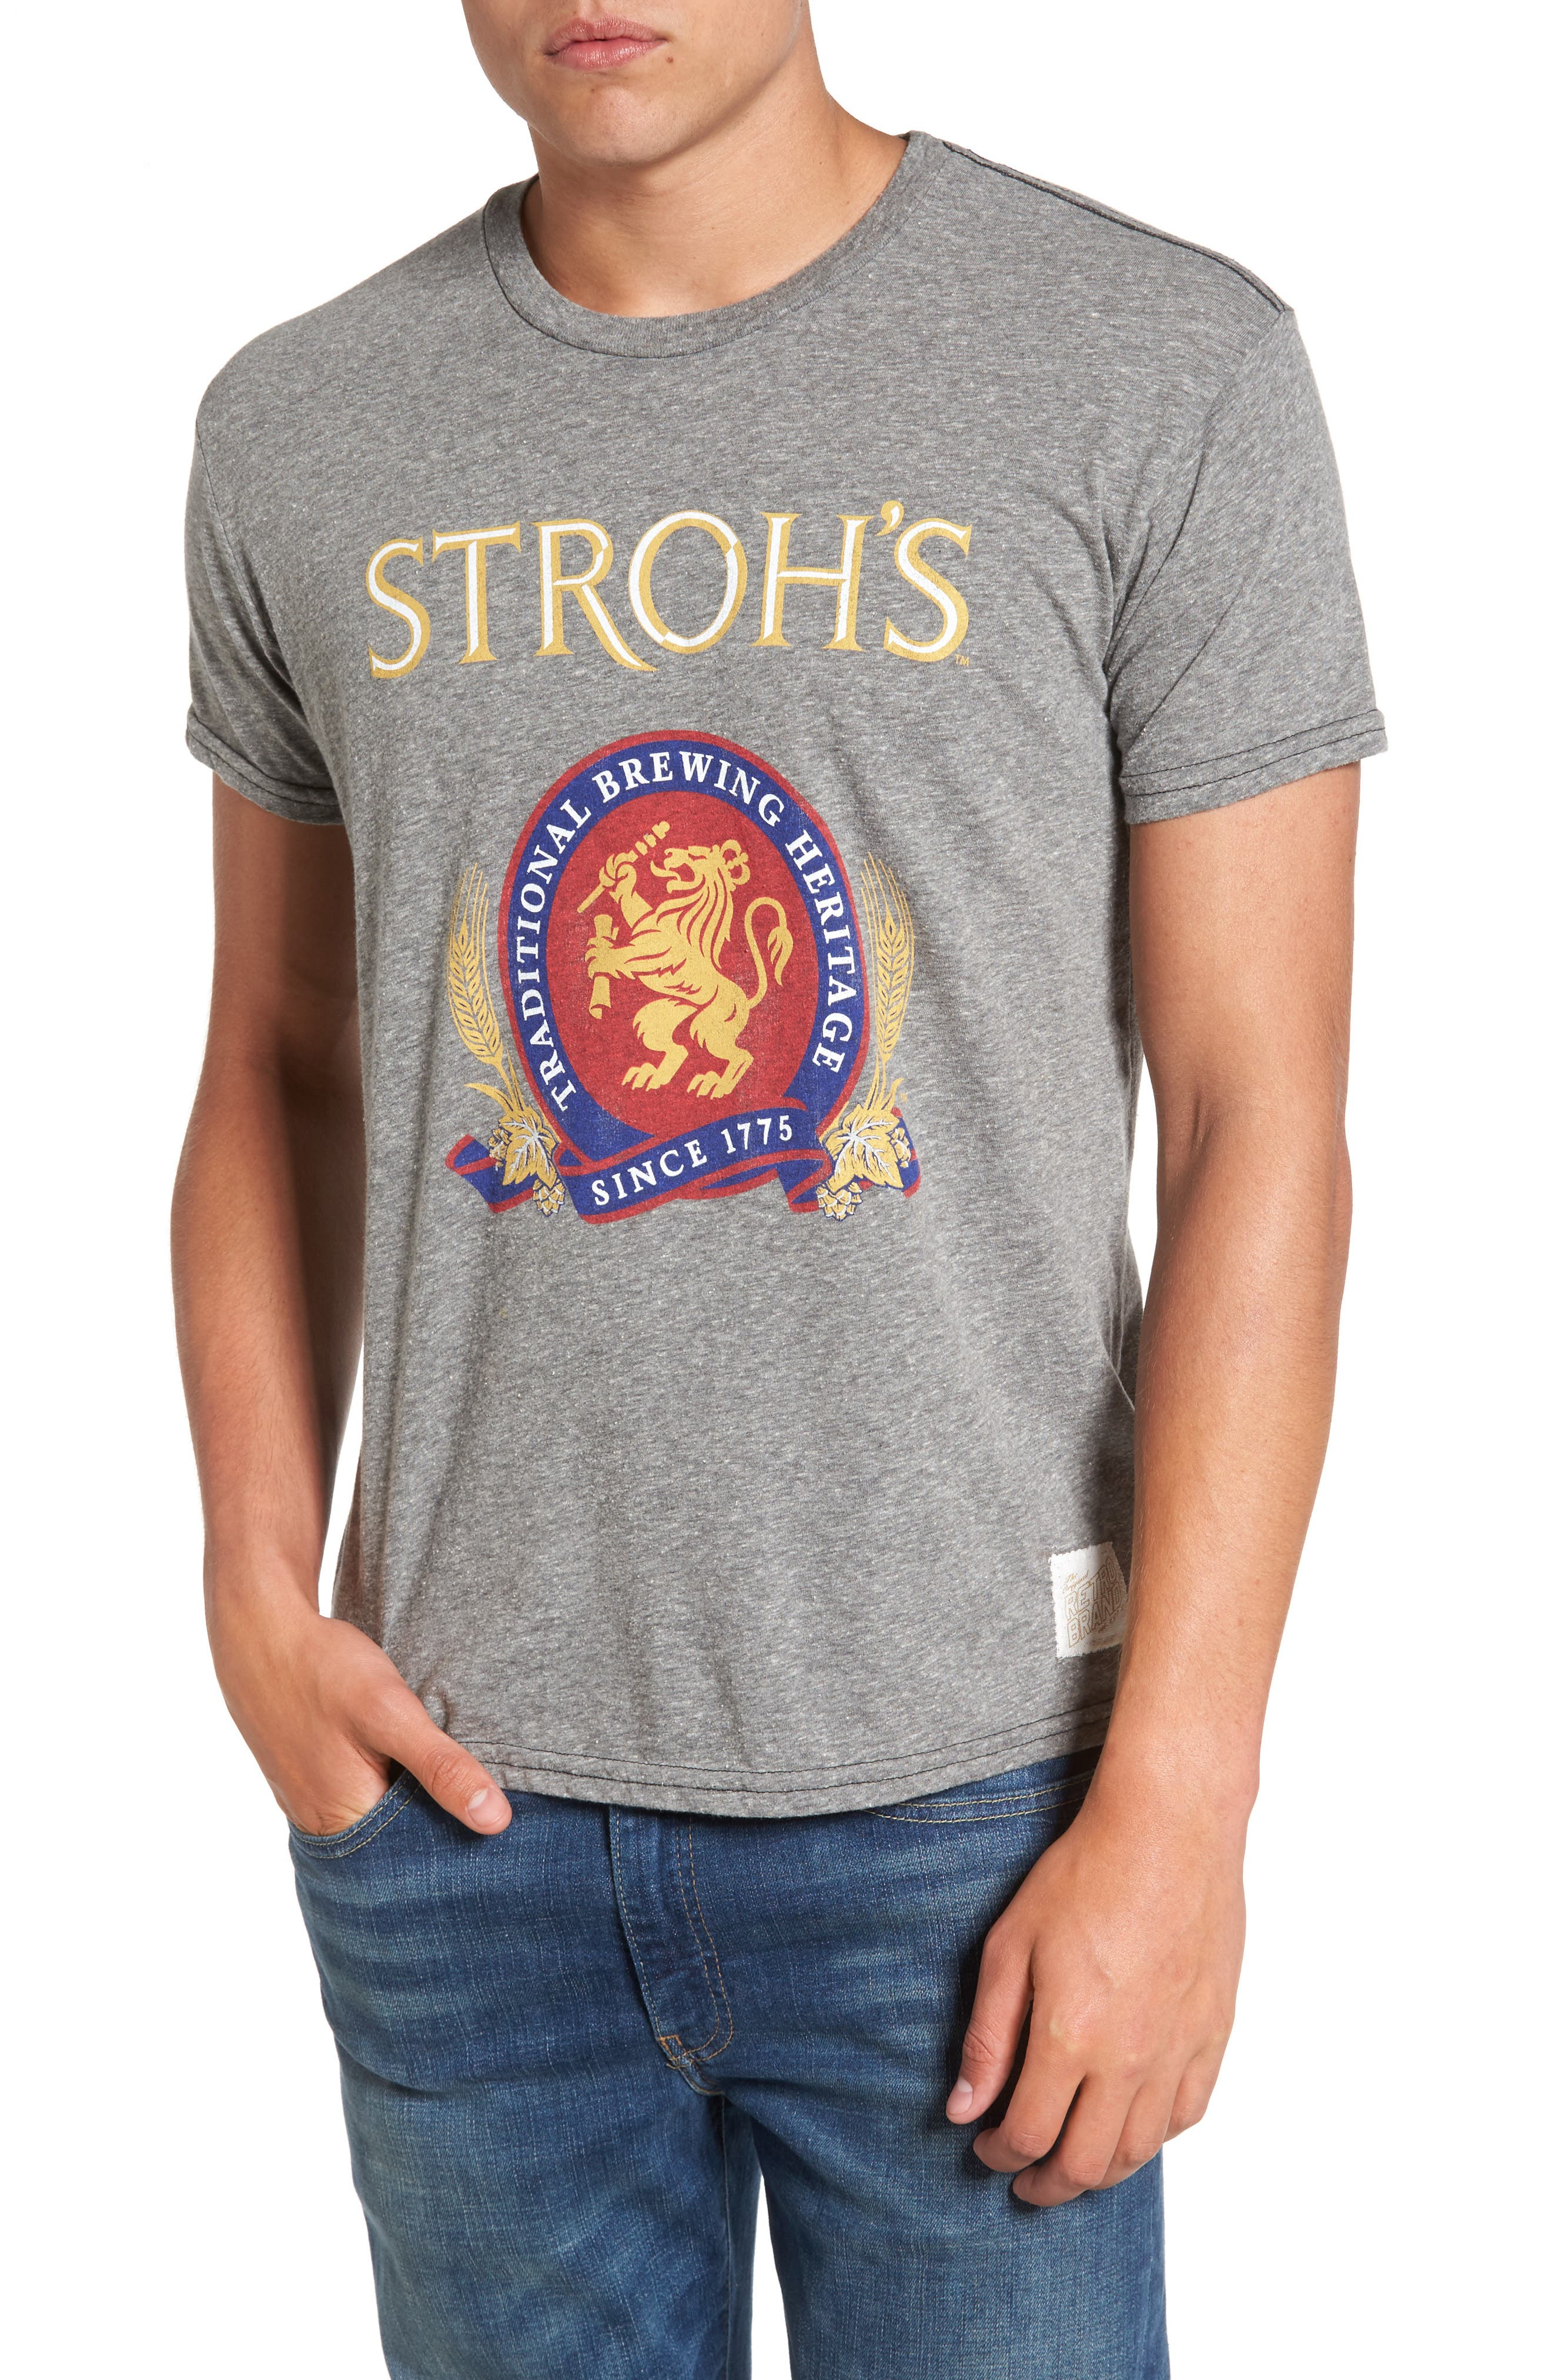 Alternate Image 1 Selected - Retro Brand Stroh's Graphic T-Shirt